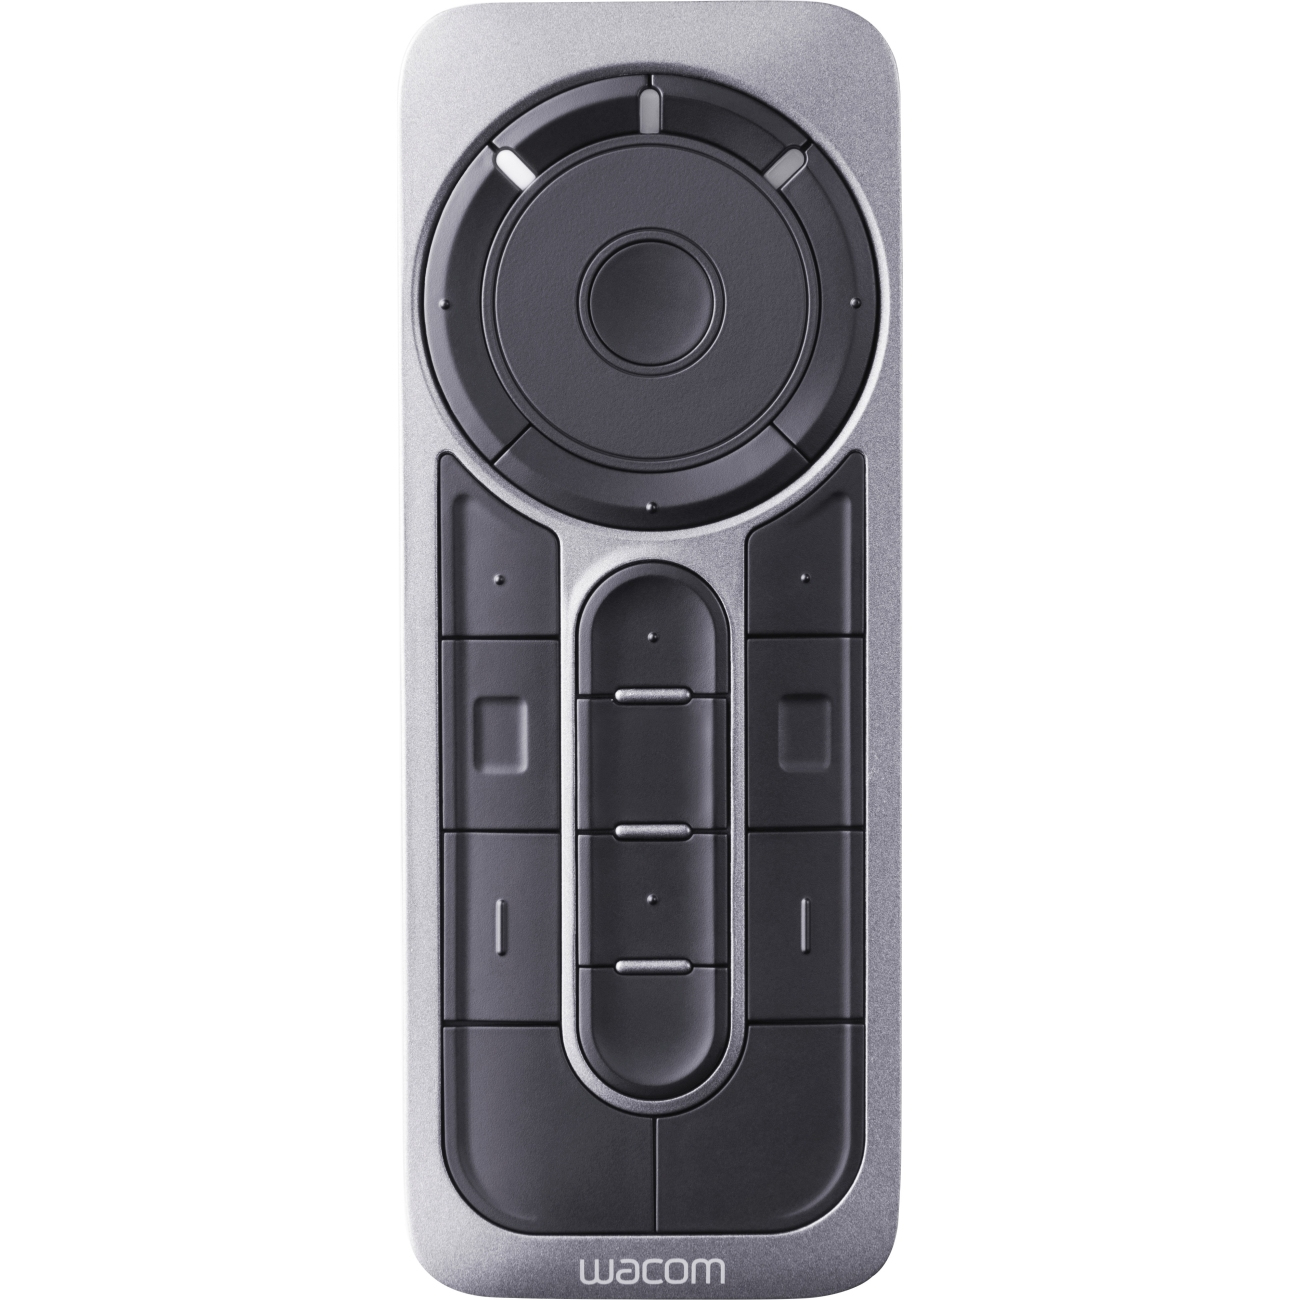 Wacom ACK-411050 Press buttons Black,Grey remote control